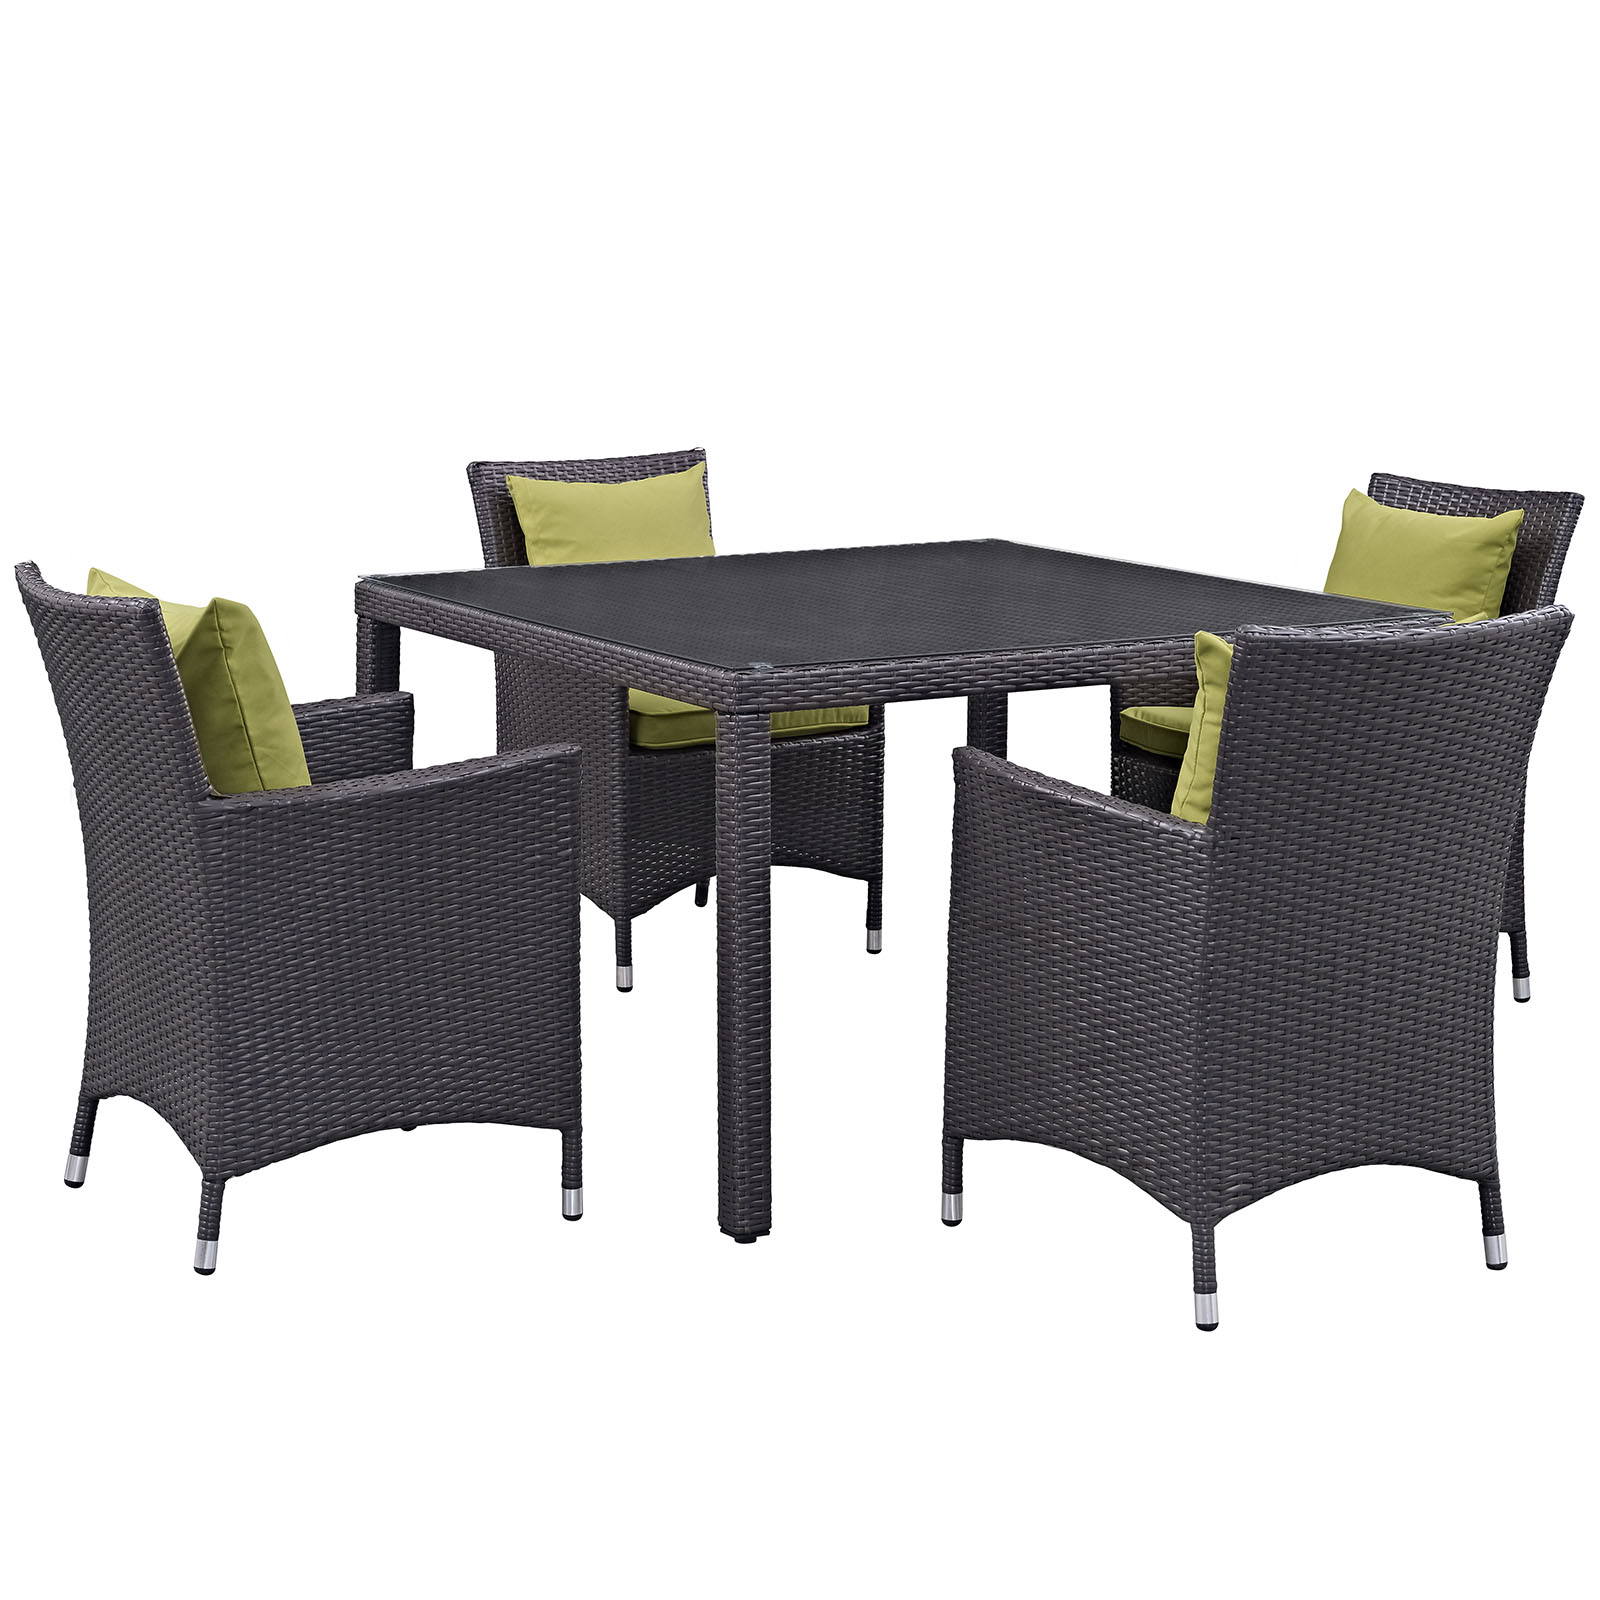 Modern Contemporary Urban Design Outdoor Patio Balcony Five PCS Dining Chairs and Table Set, Green, Rattan